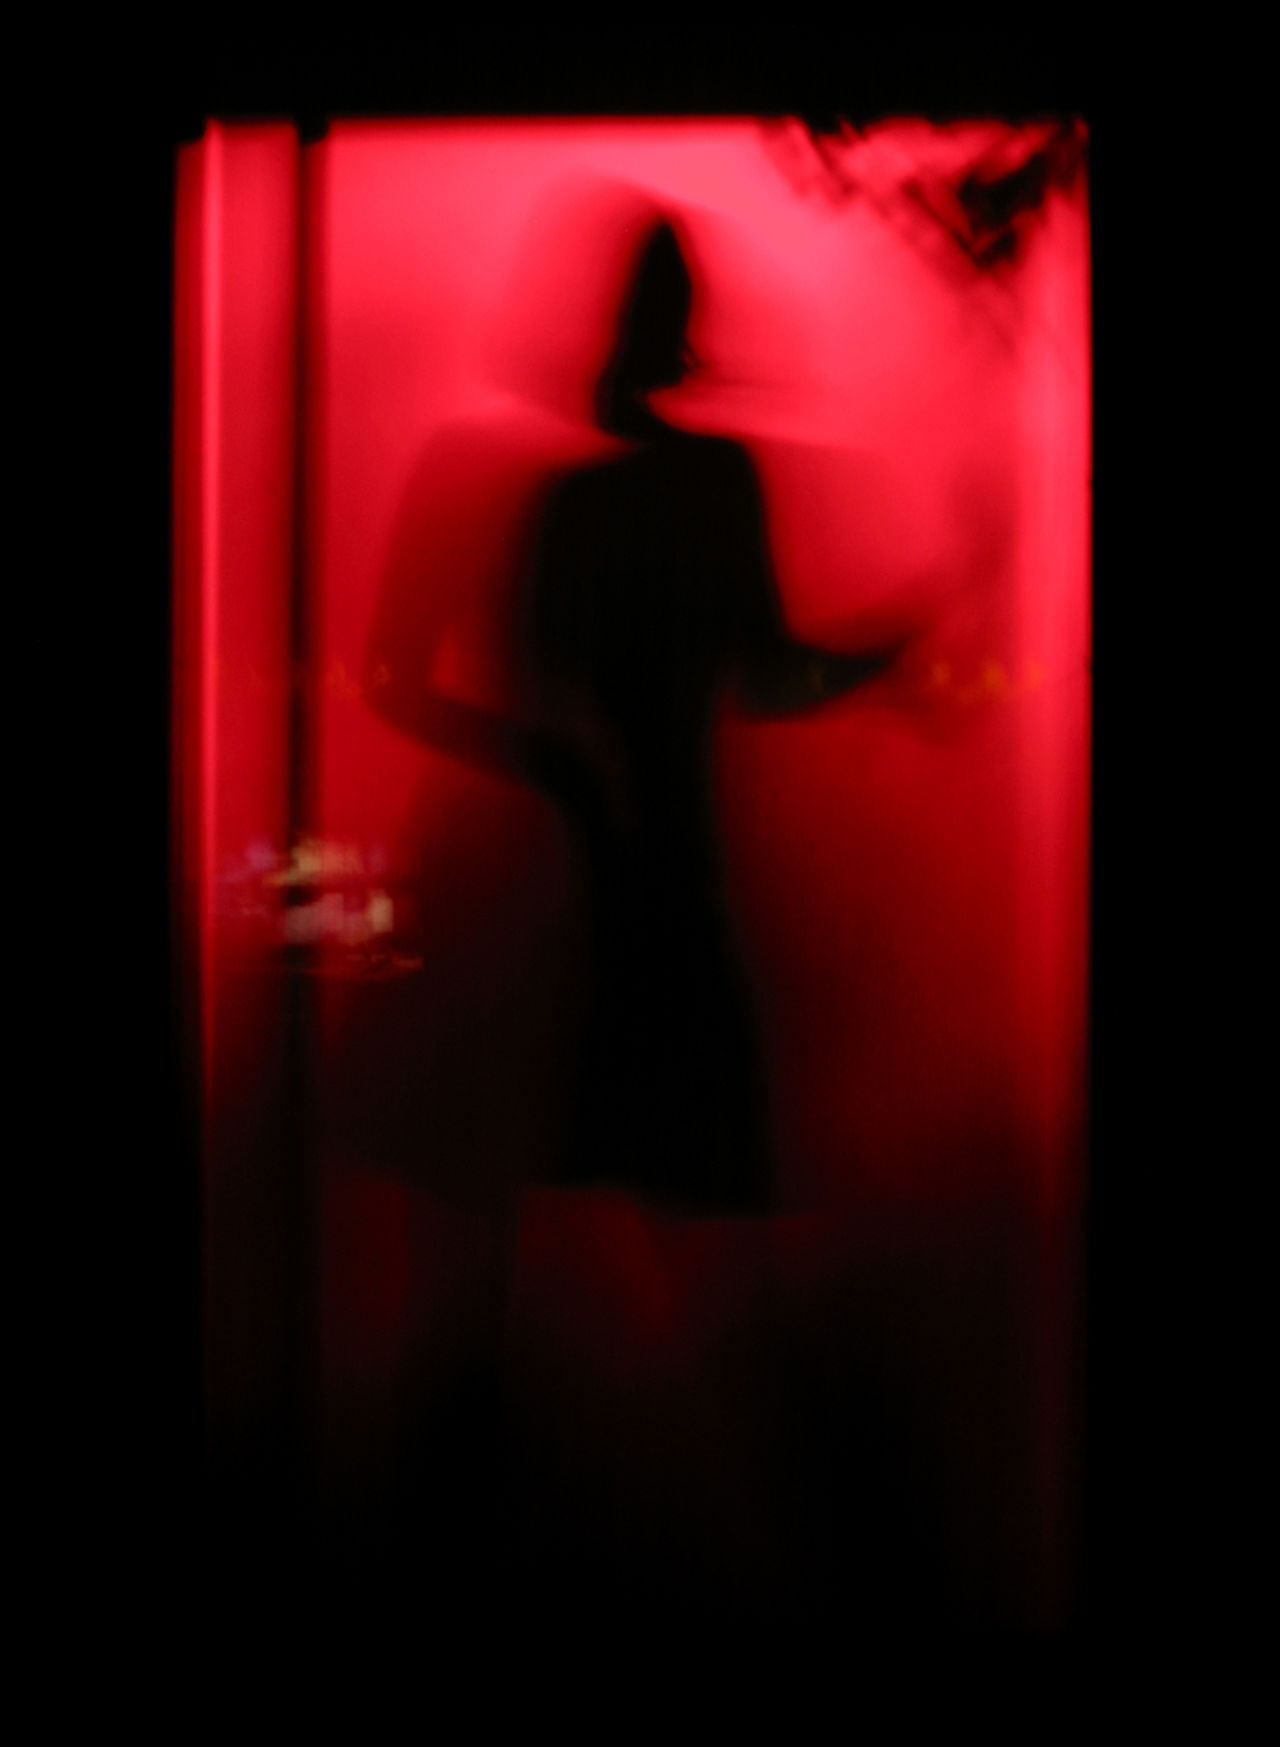 Adult Adults Only Dancer Dancing Entertainment Night Club Nightlife One Person Red Red Light Red Light District Silhouette Standing Table Dance Unrecognizable Person Woman